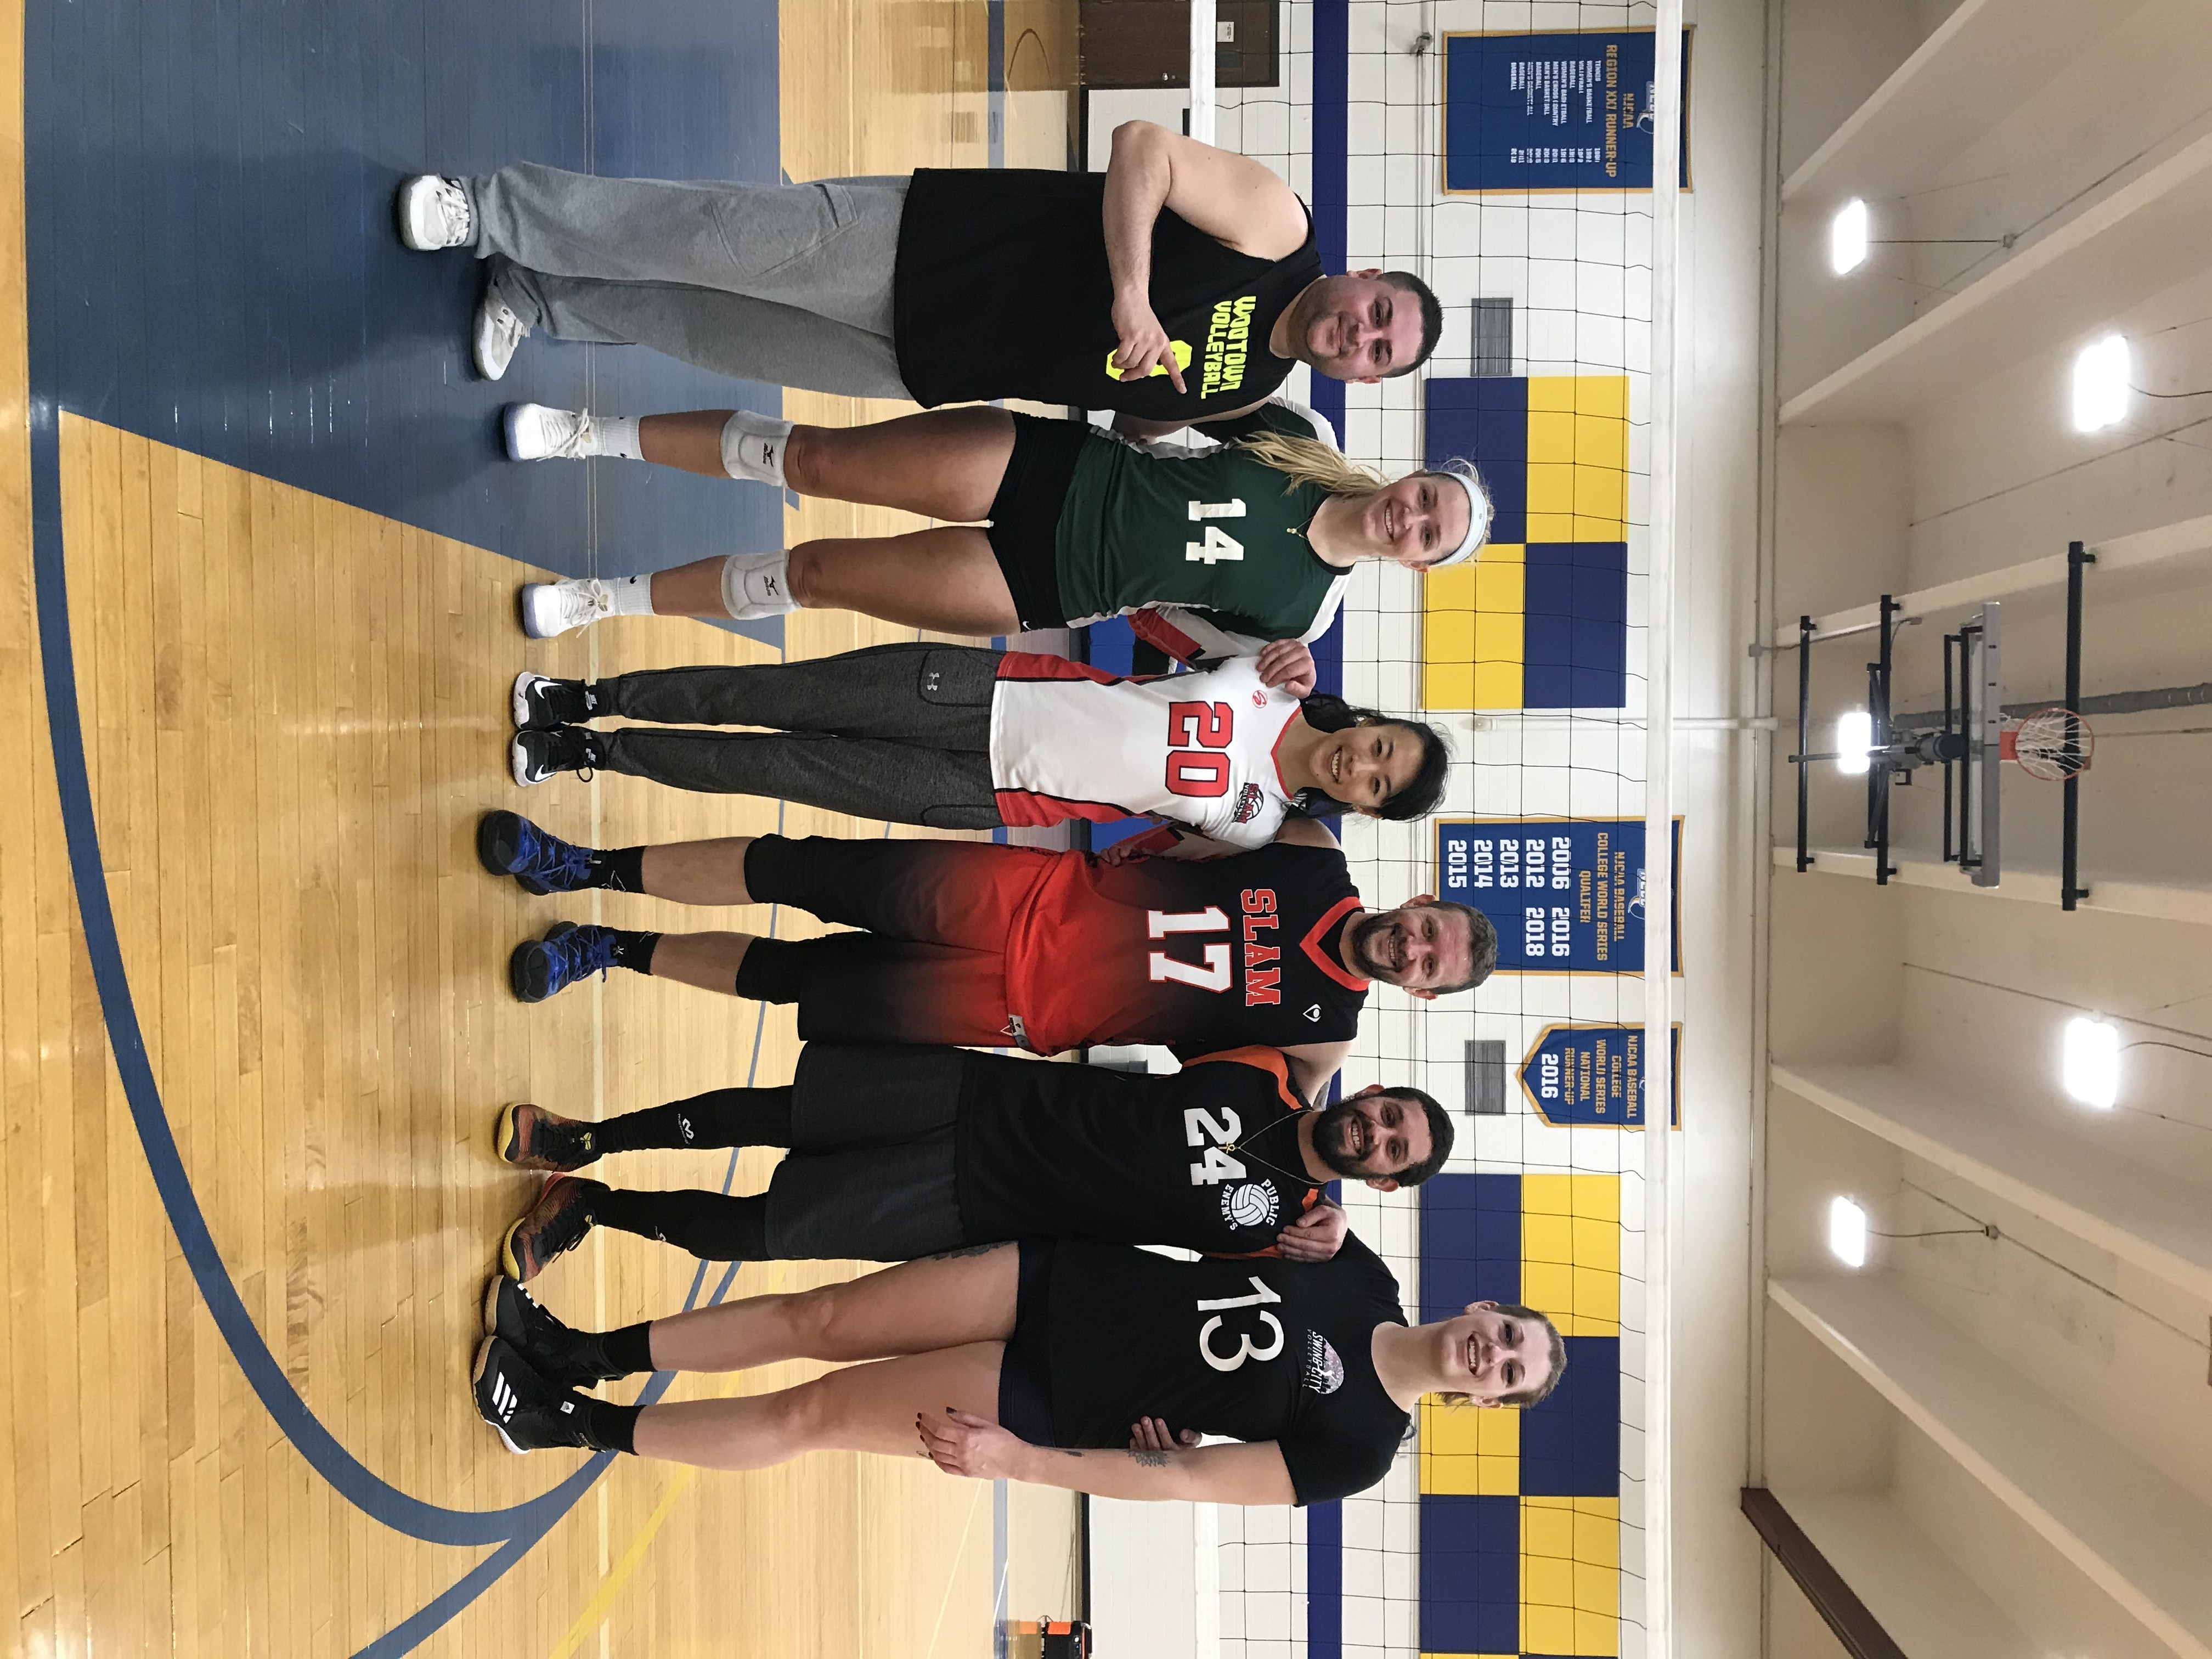 11/23/2019 RCO B- Champions - Wootown Thunder Chickens